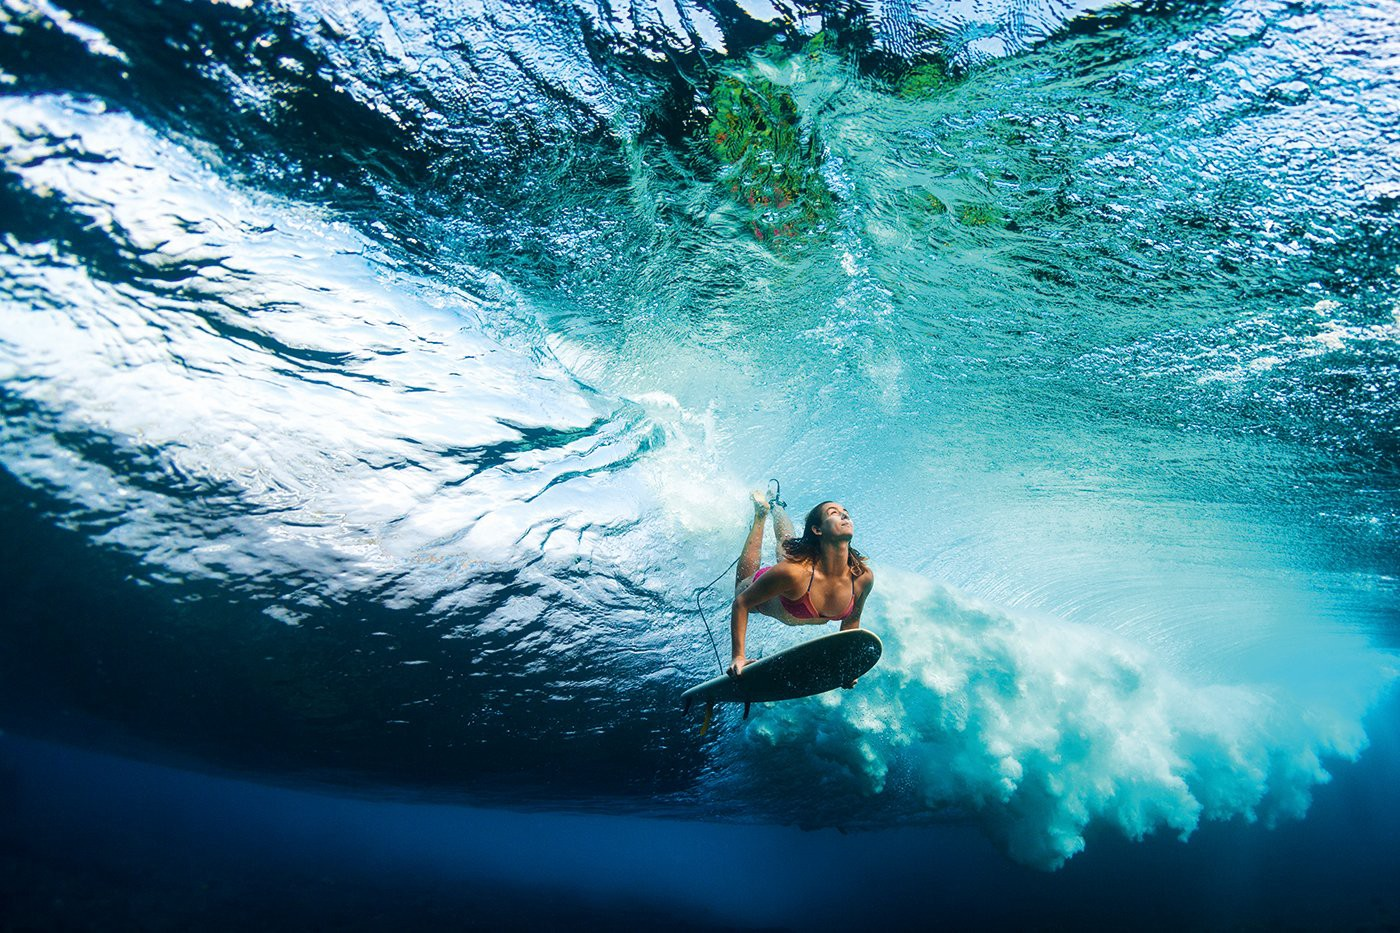 Surfer Anna Ehrgott captured with her board below a wave forming. (Photo: Sarah Lee, She Surf)